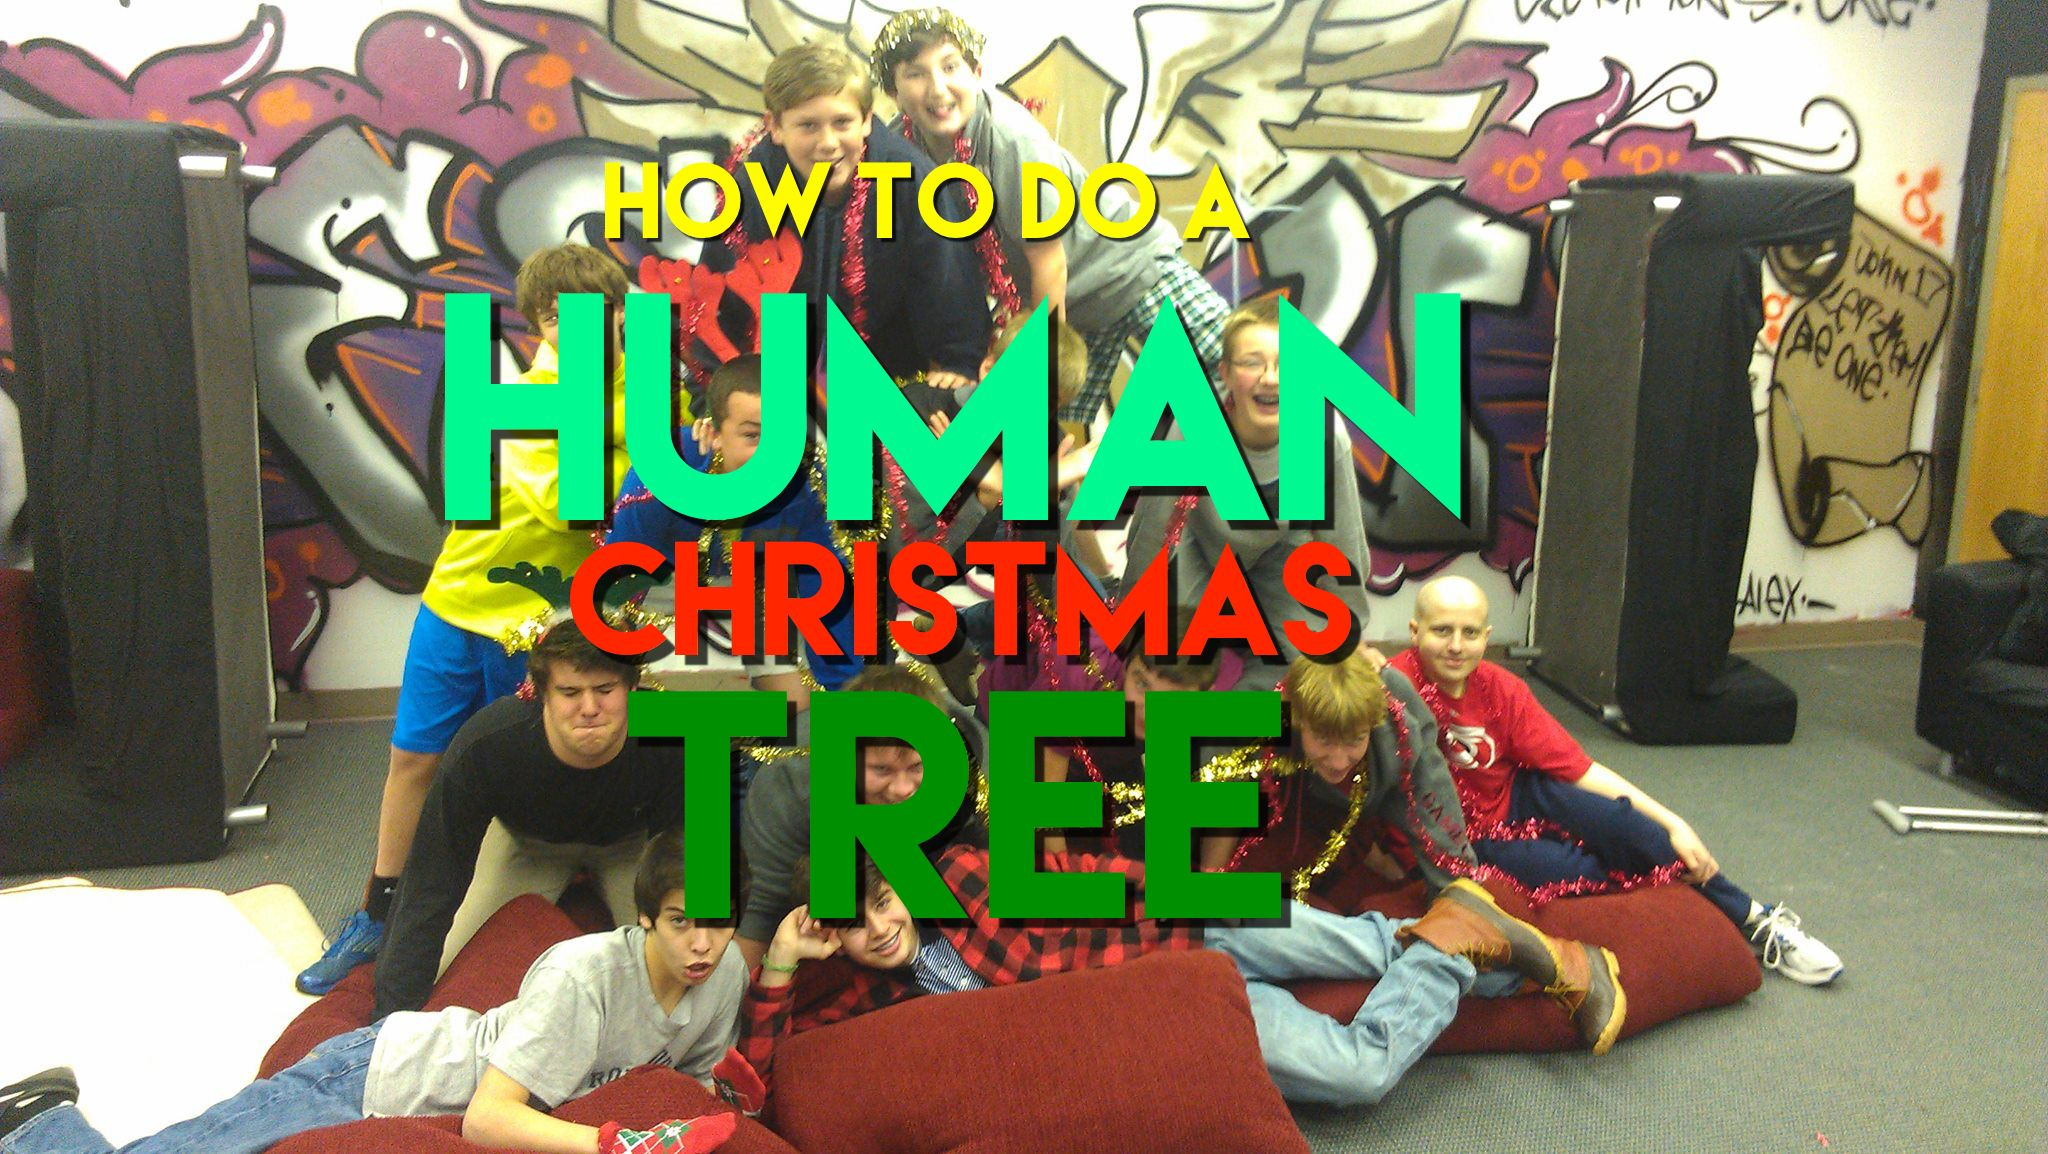 Christmas Youth Group Games